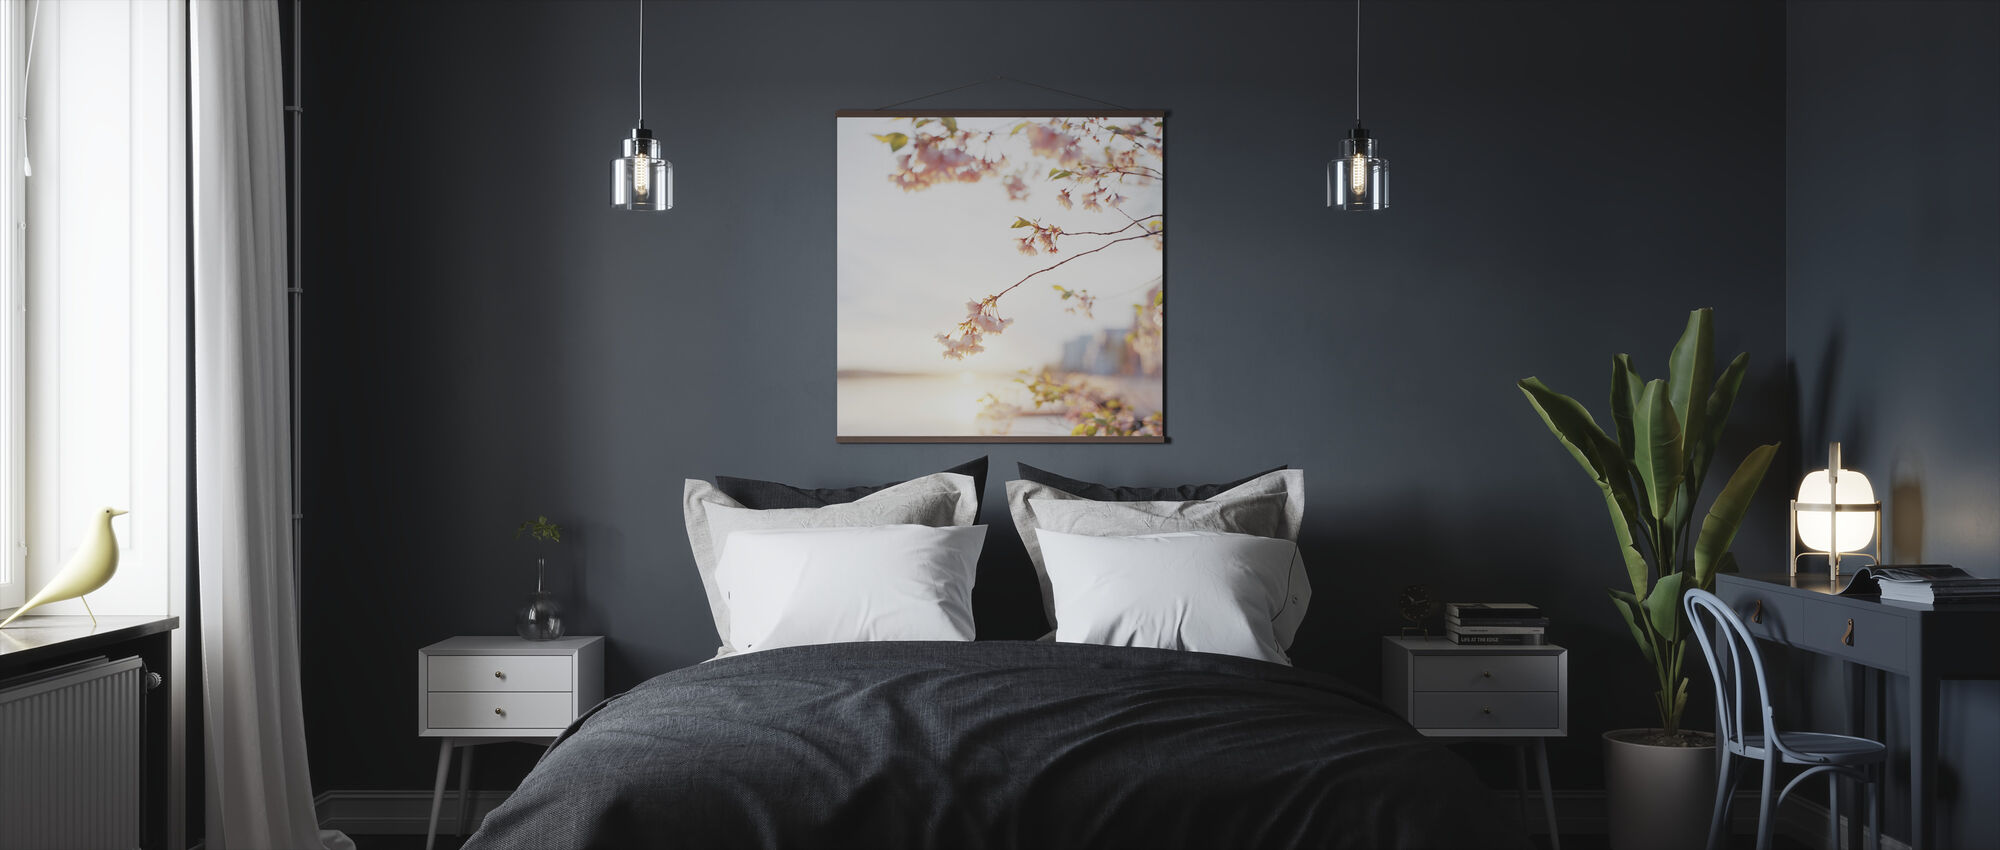 Fragile Blossoms - Poster - Bedroom